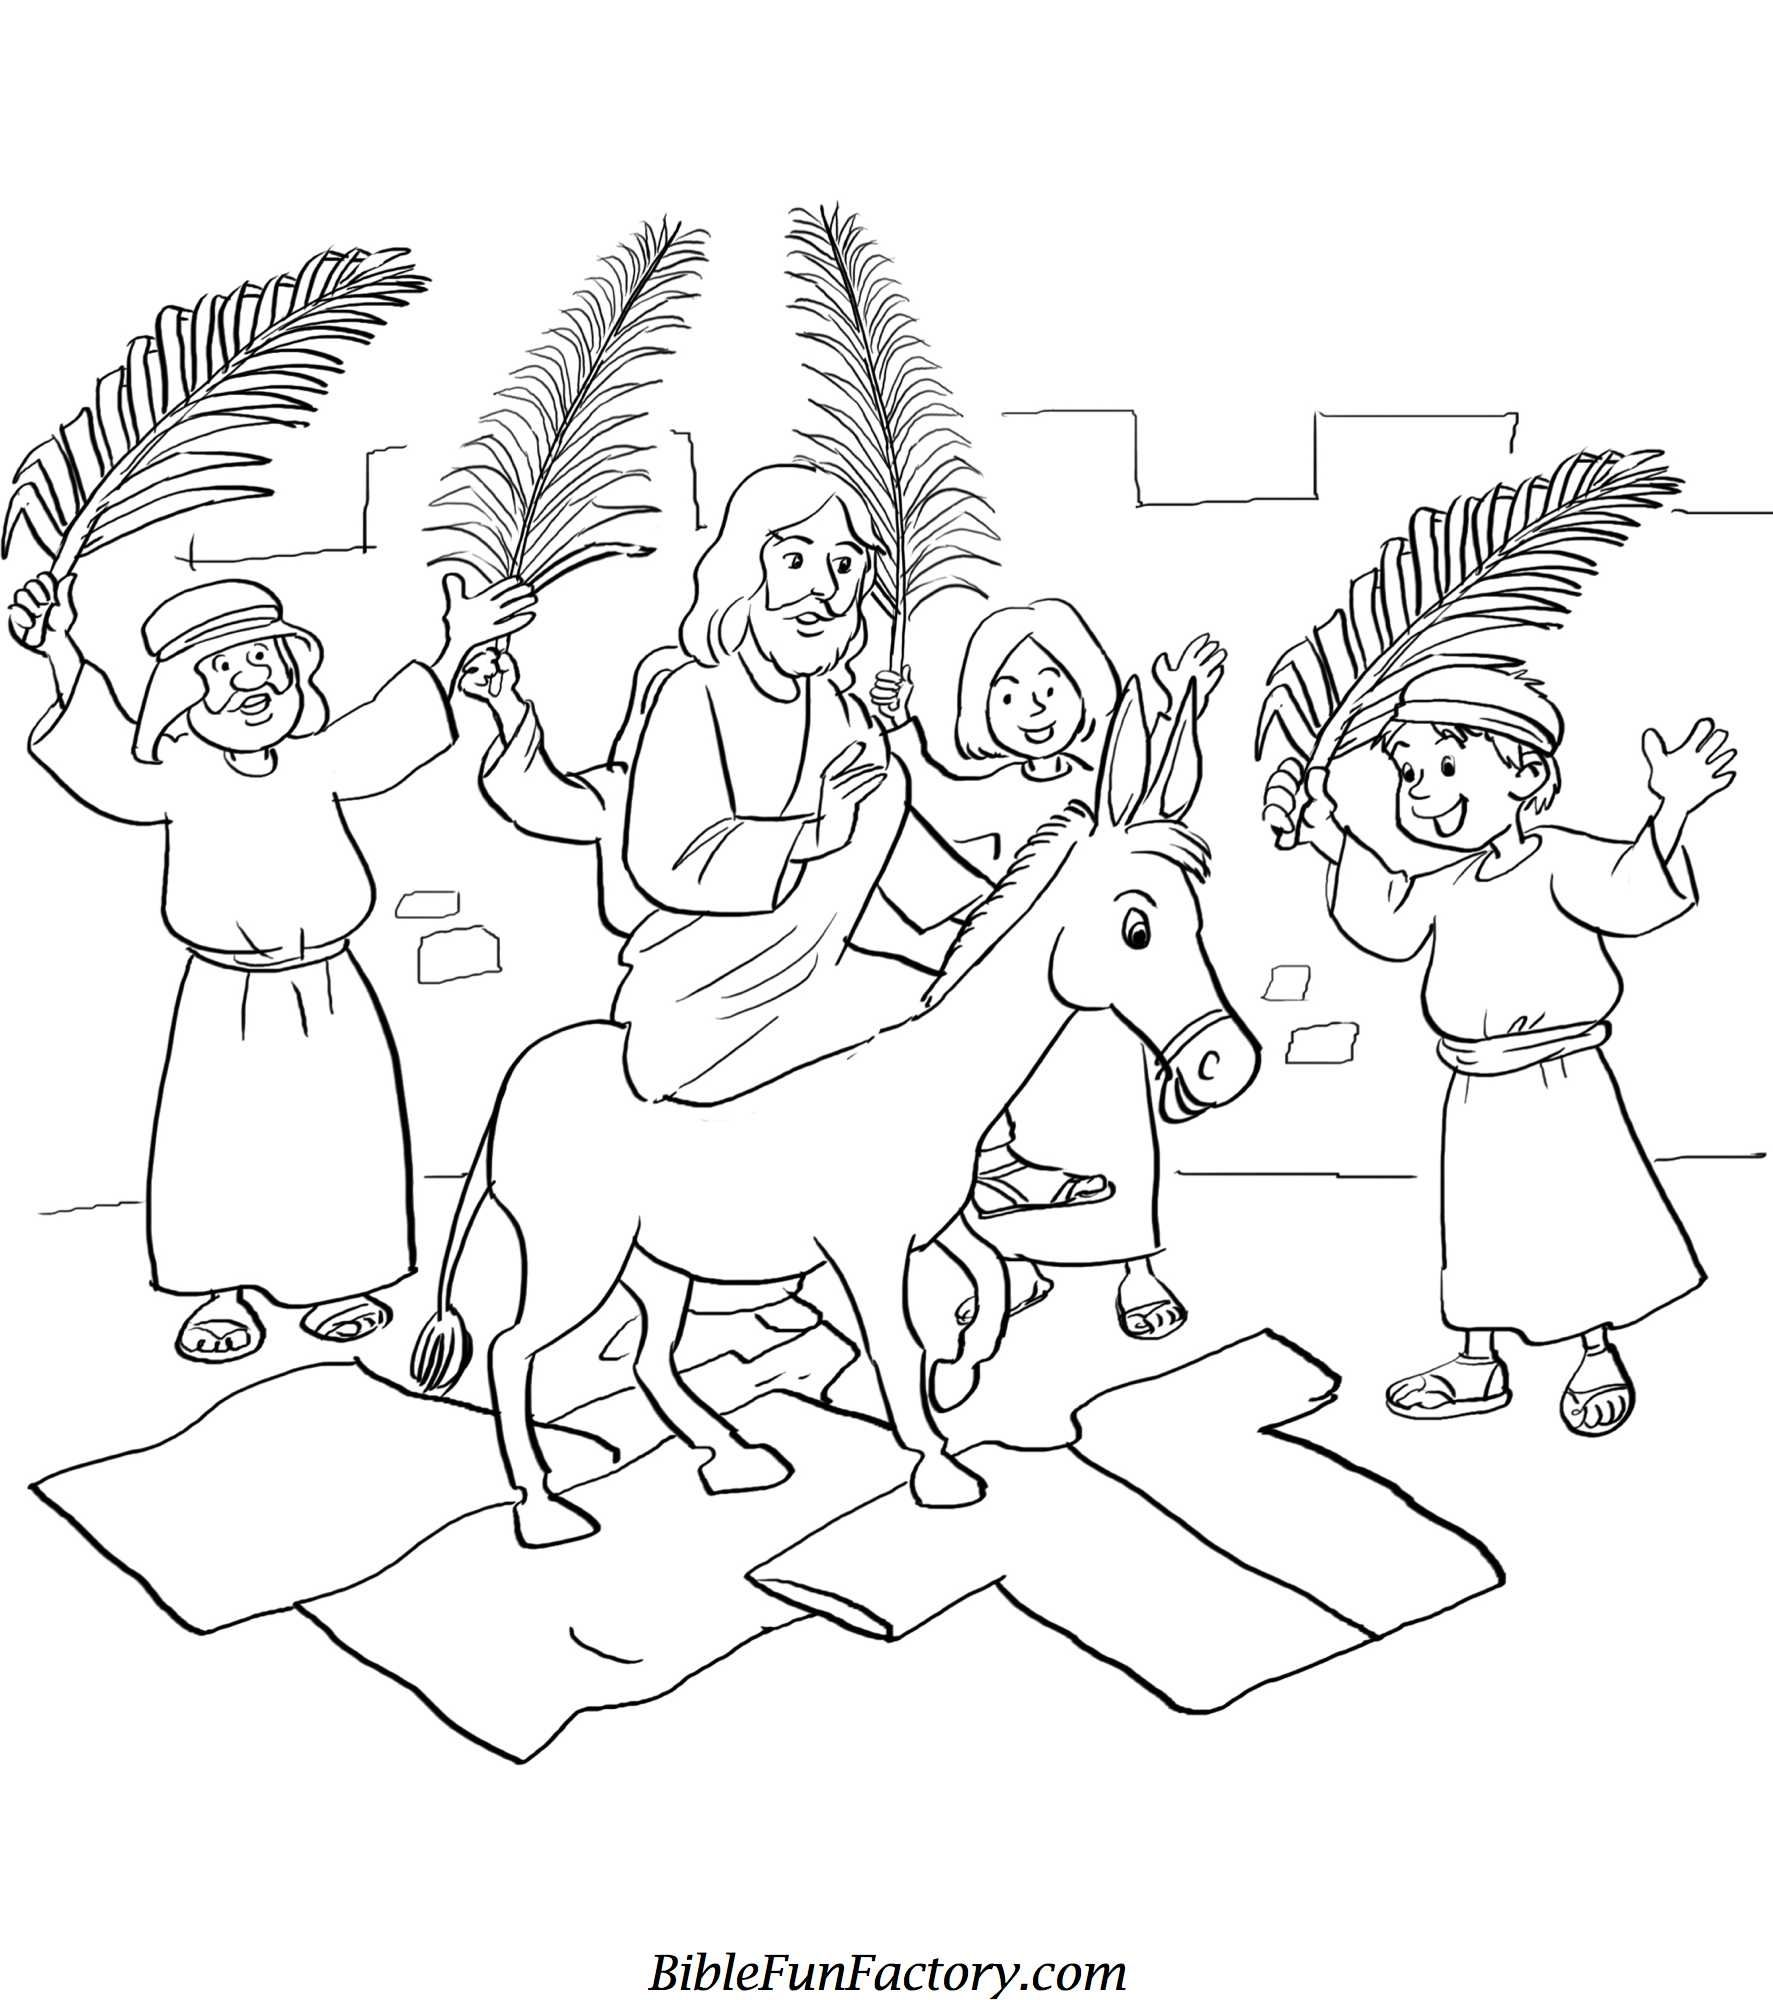 Free easter coloring pages for toddlers - Free Palm Sunday Coloring Sheets Bible Lessons Games And Activities Biblefunfactory Com Children Coloring Pageseaster